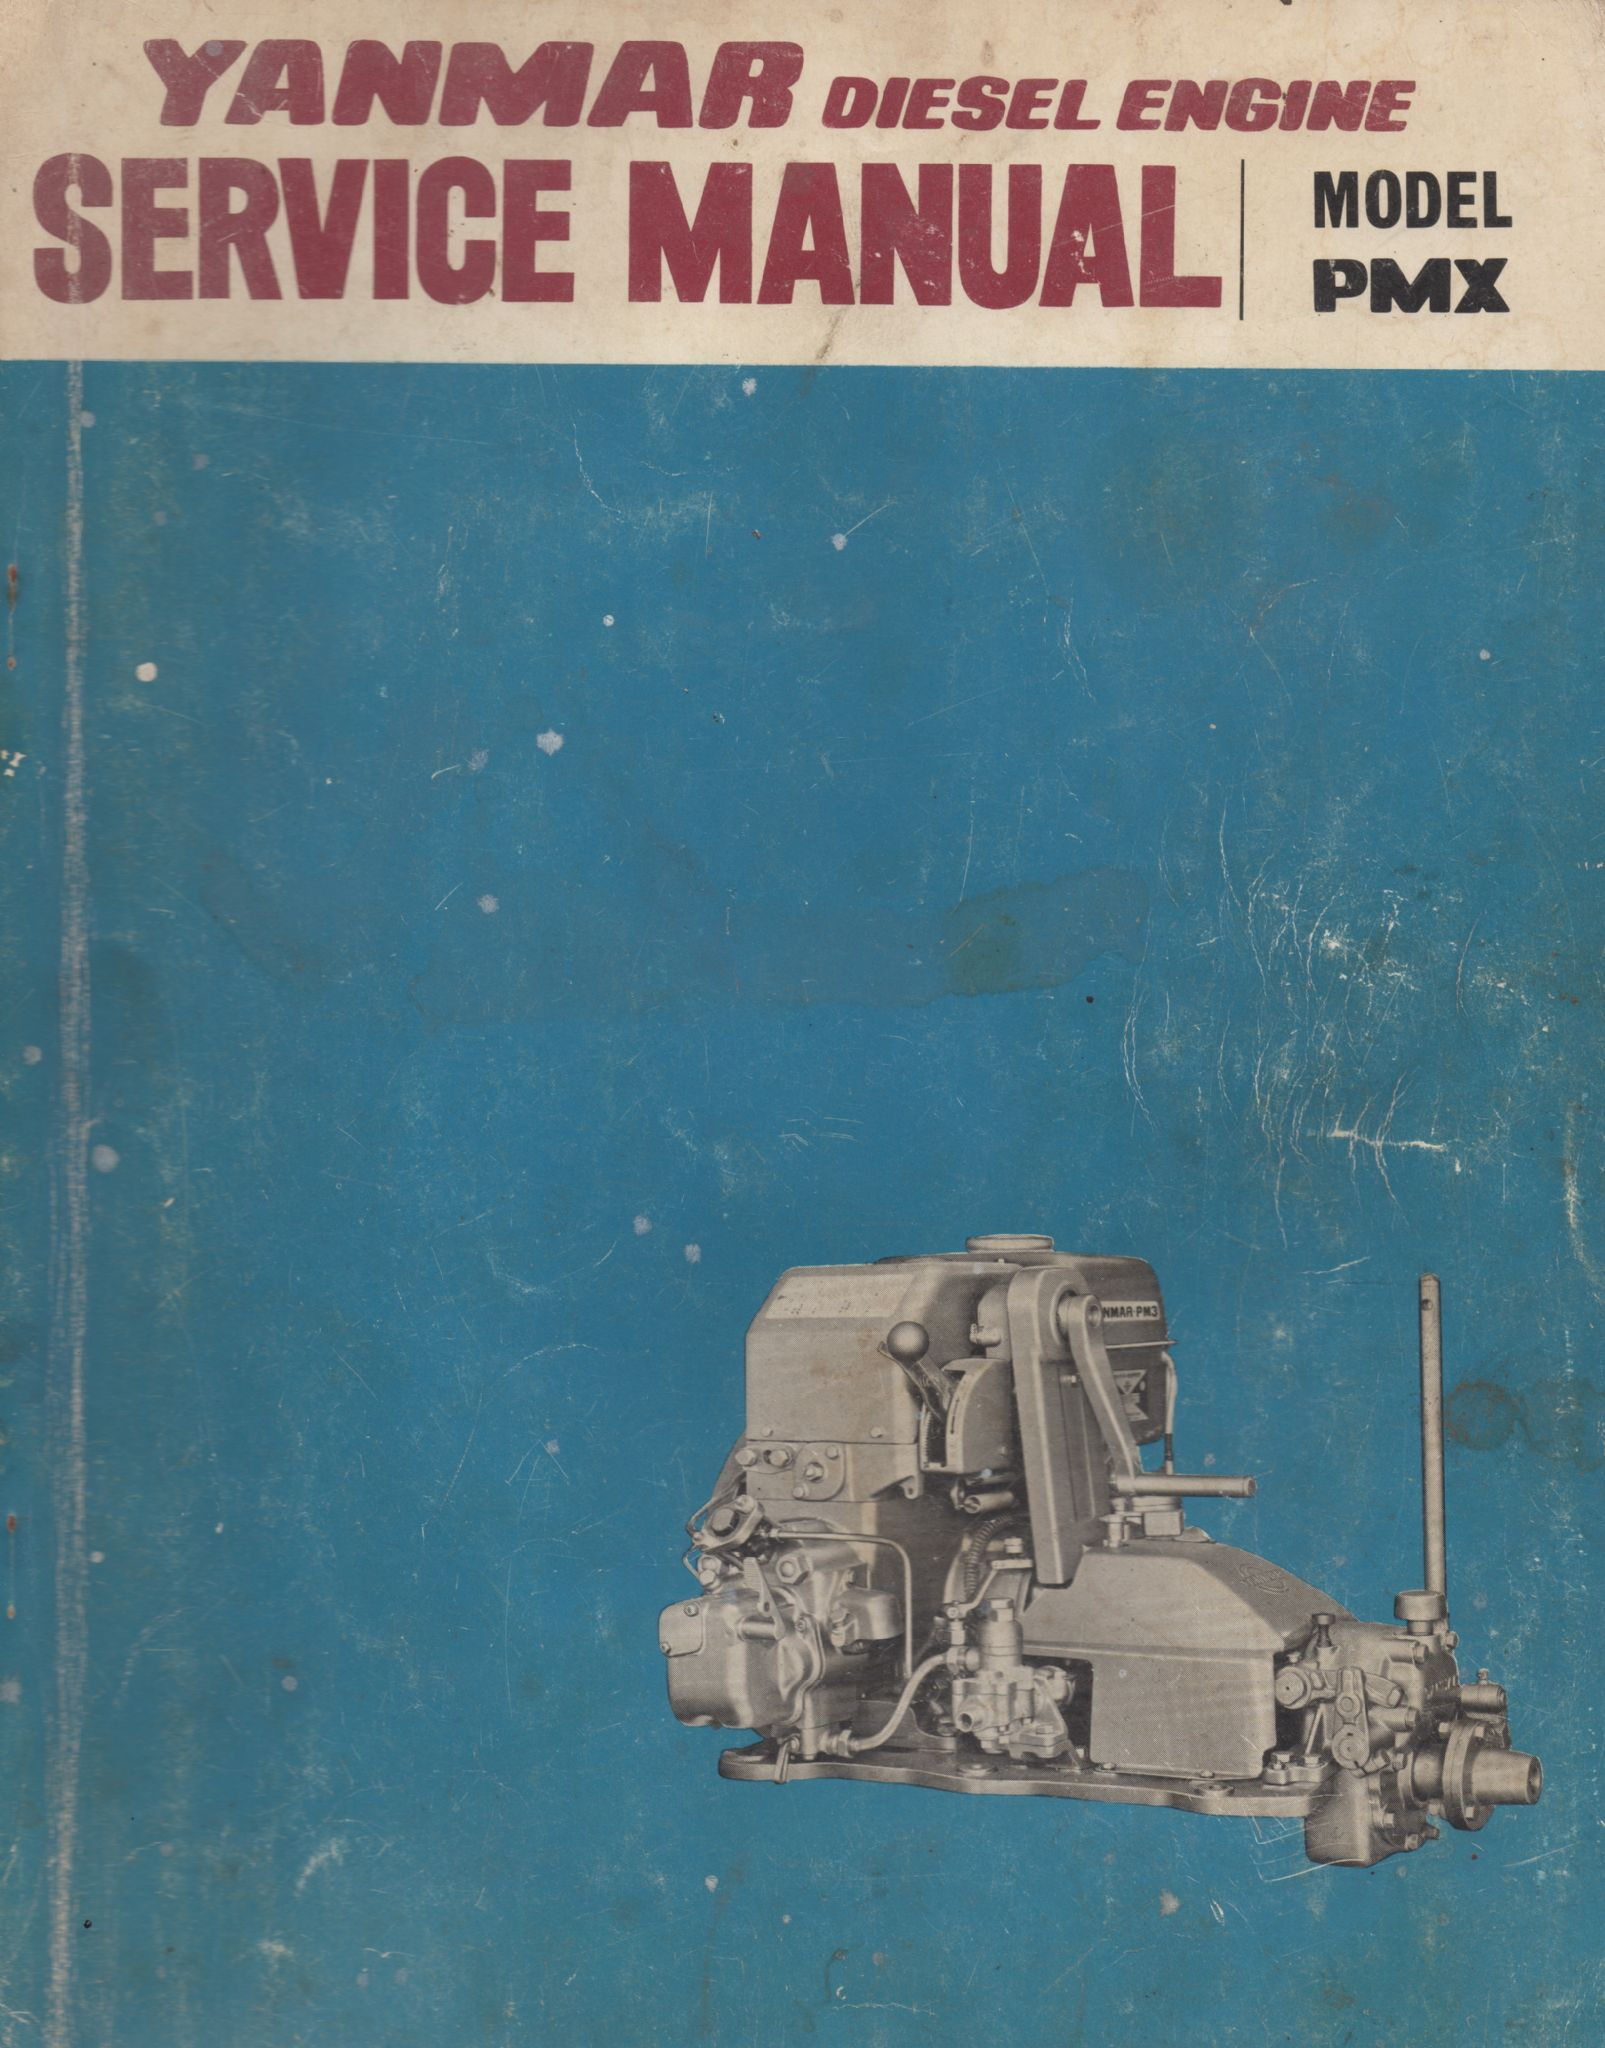 hight resolution of yanmar diesel engine service manual pmx variant attributes variant attributes variant attributes variant attributes stock status out of stock